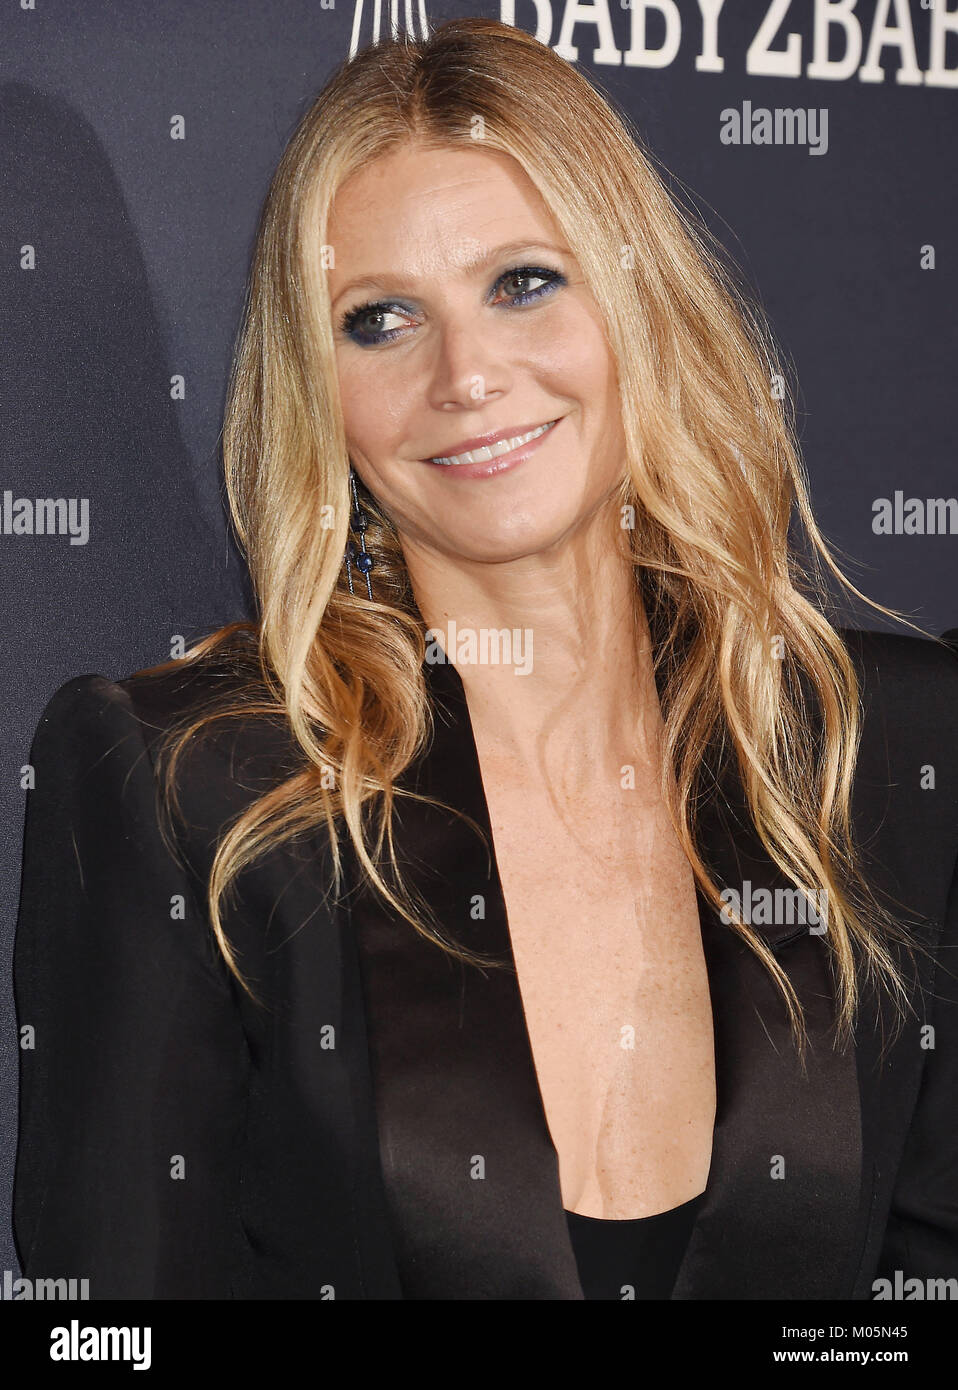 GWYNETH PALTROW US film actress  attends the 2017 Baby2Baby Gala at 3Labs on November 11, 2017 in Culver City, California. - Stock Image